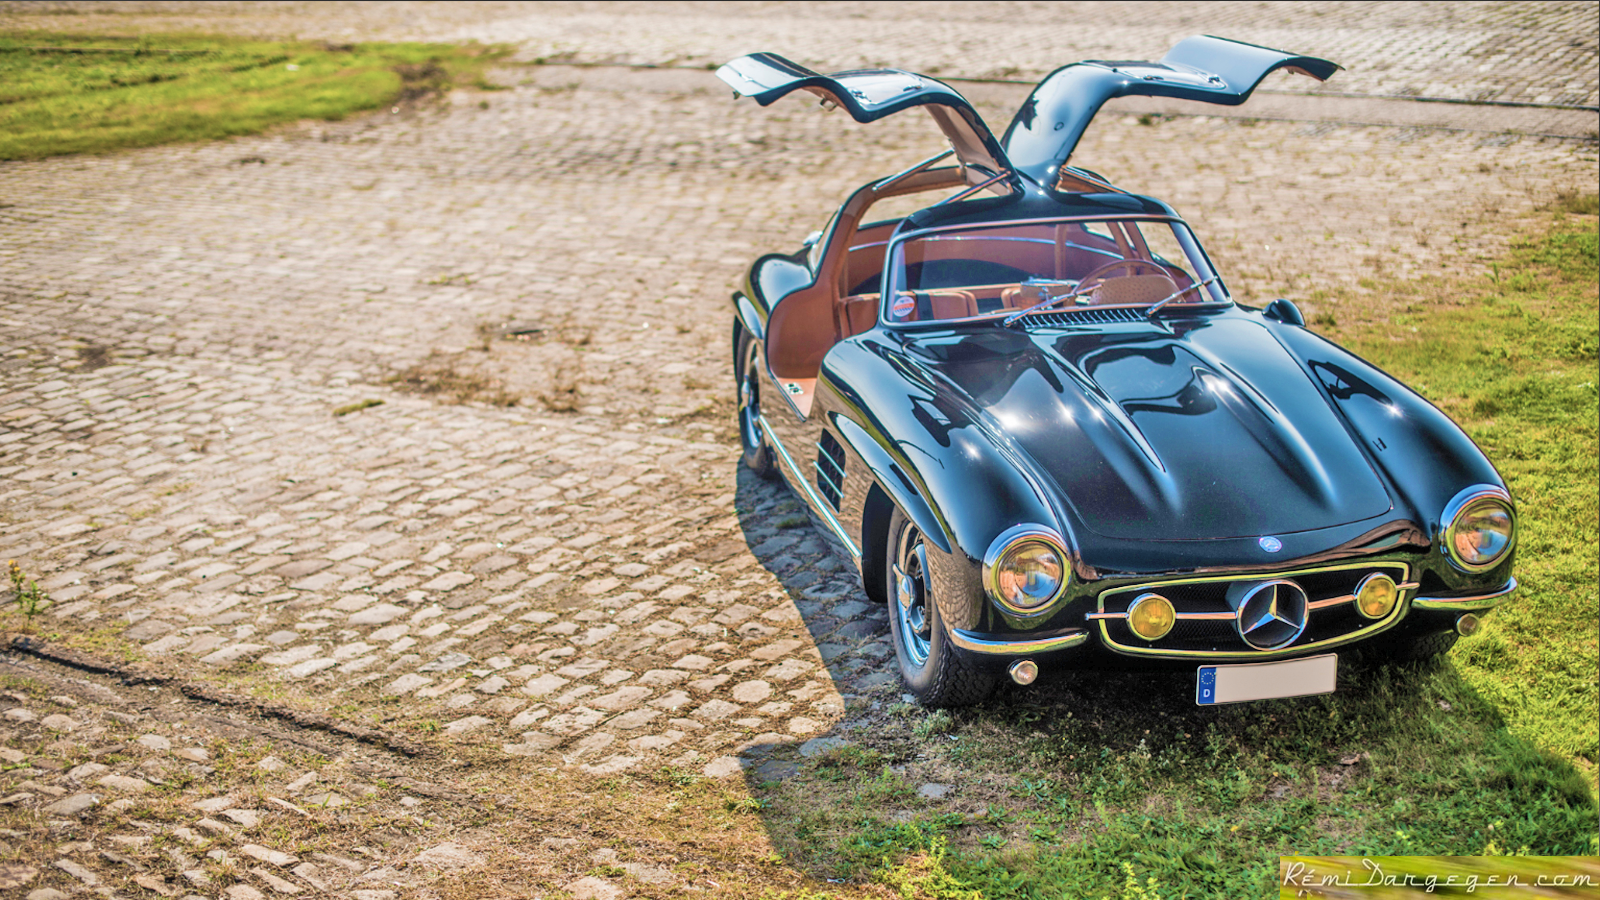 Distraught Owner Seeks His Stolen 300SL Gullwing